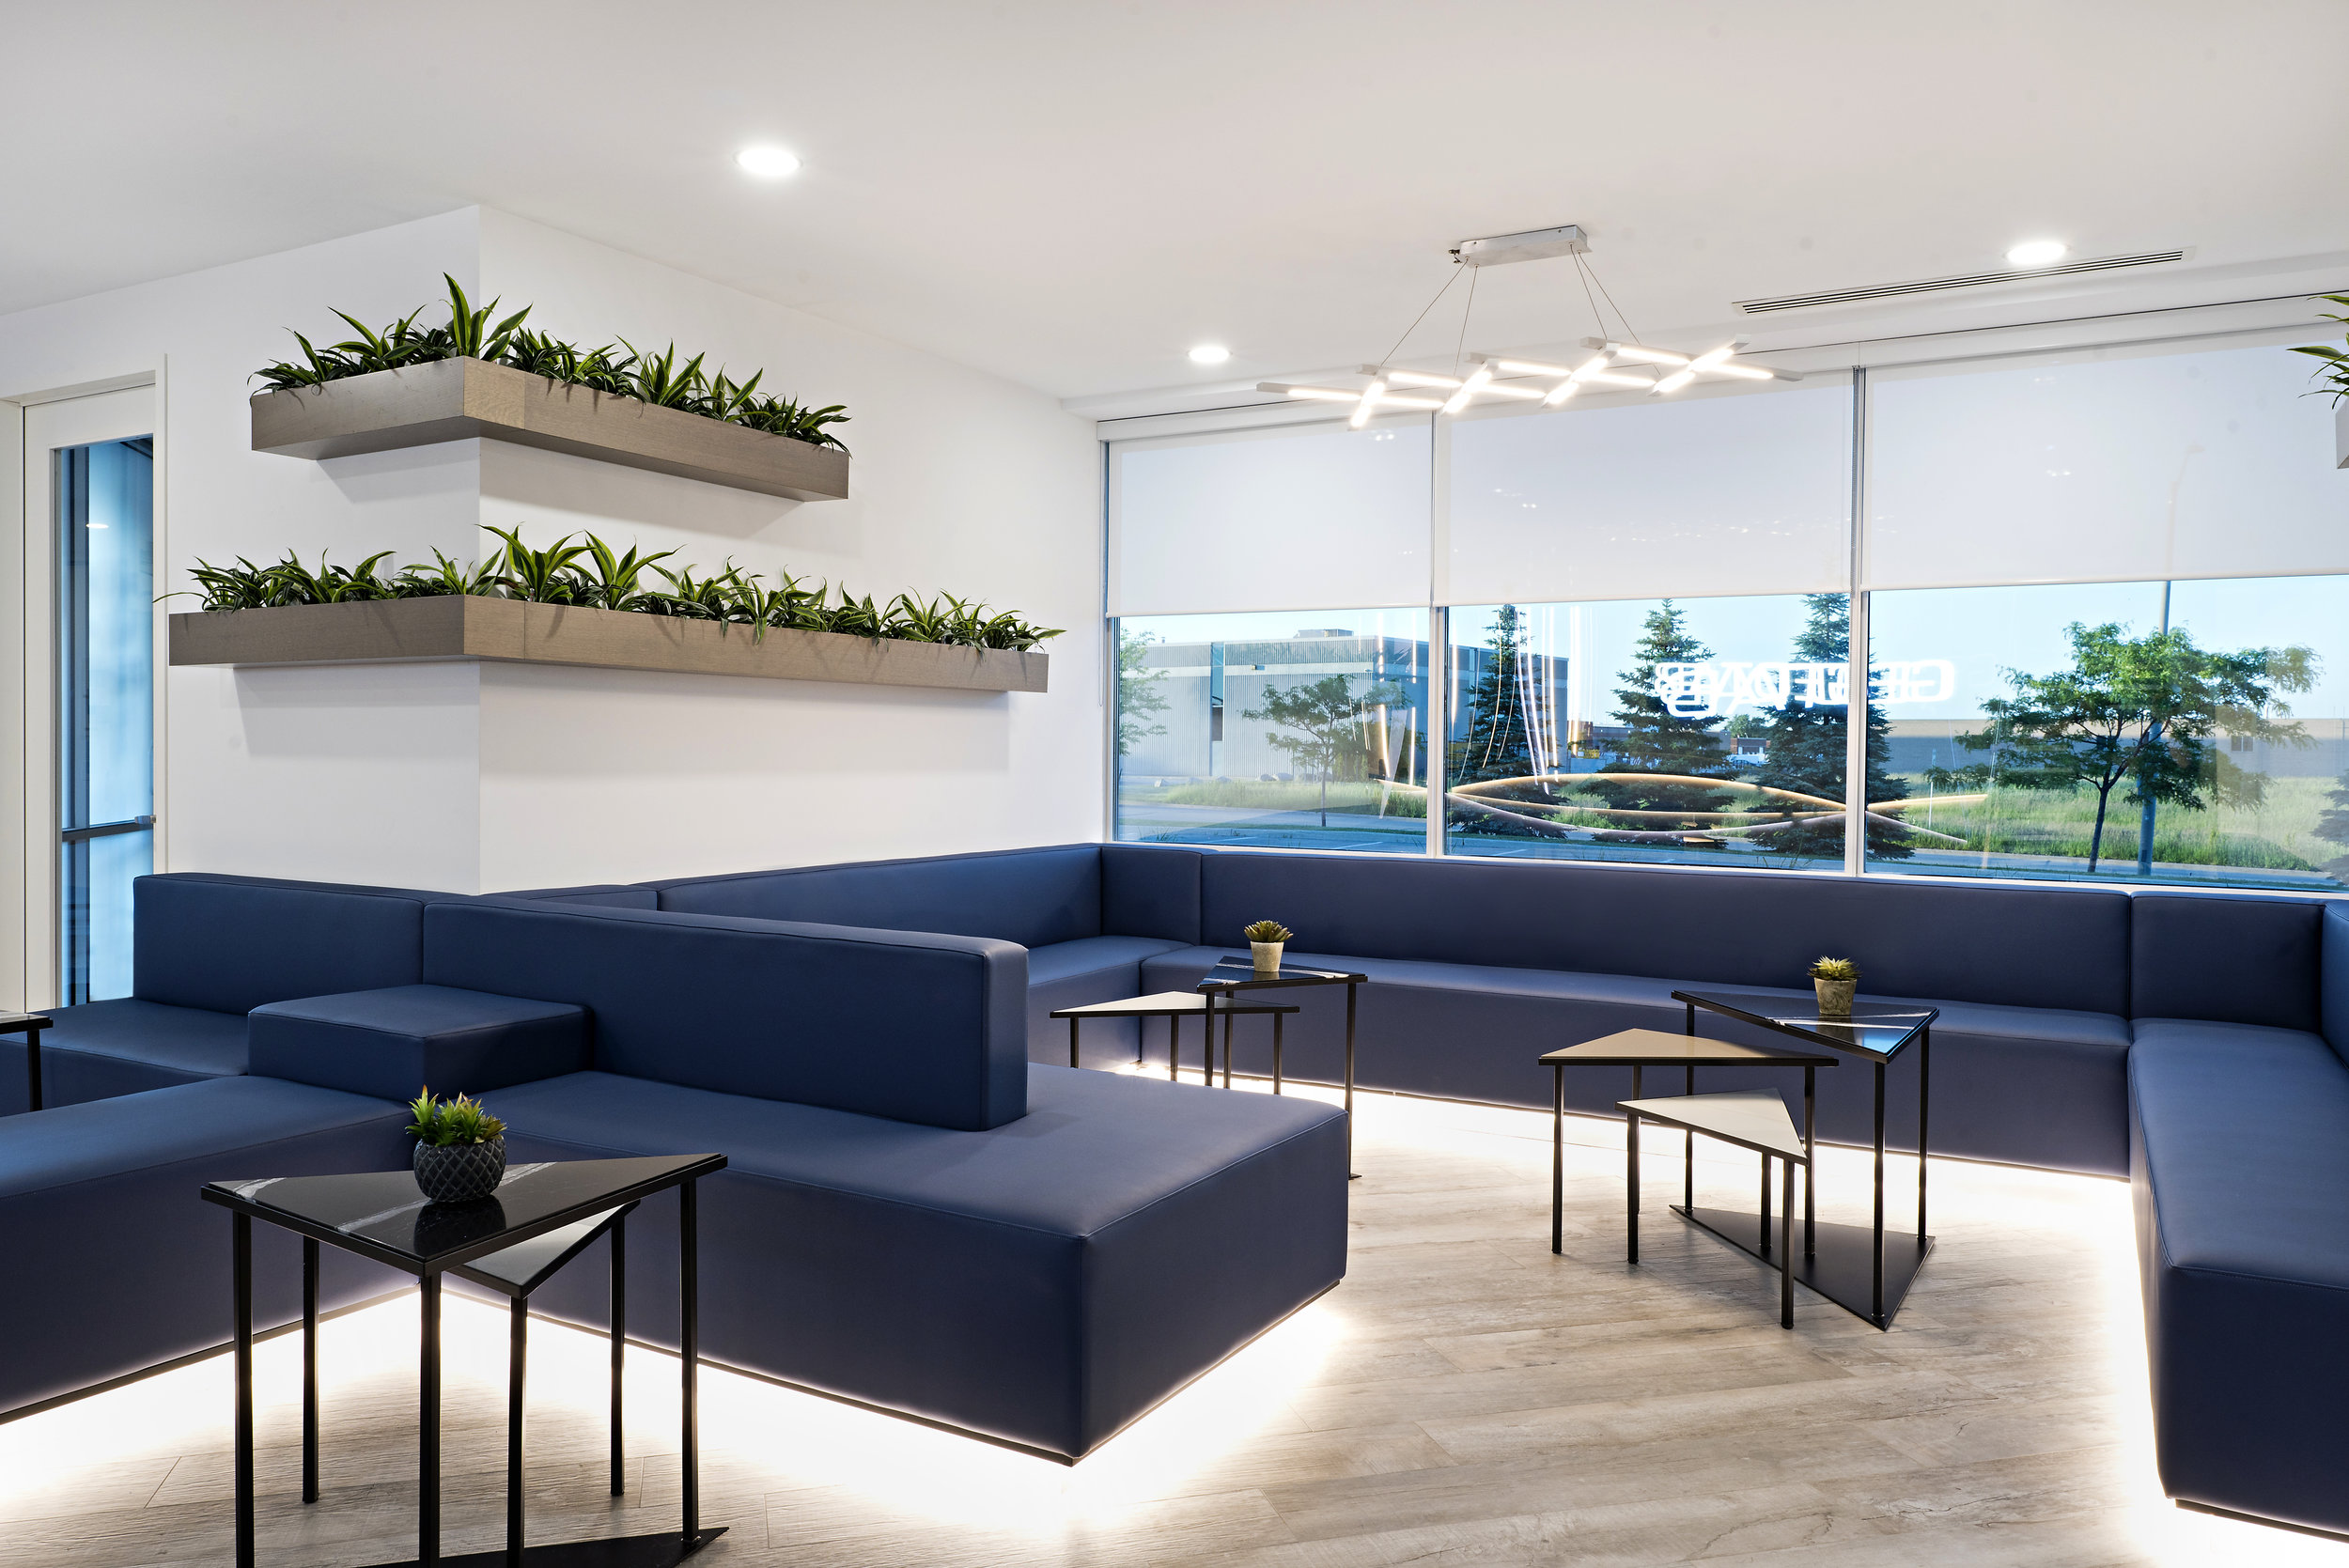 4pizzale design intrerior design commercial office space reception banquette seating navy blue vinyl led lighting stained white oak self watering planter white roller blind grey laminate floor custom metal and stone nesting table modern light fixture.jpg